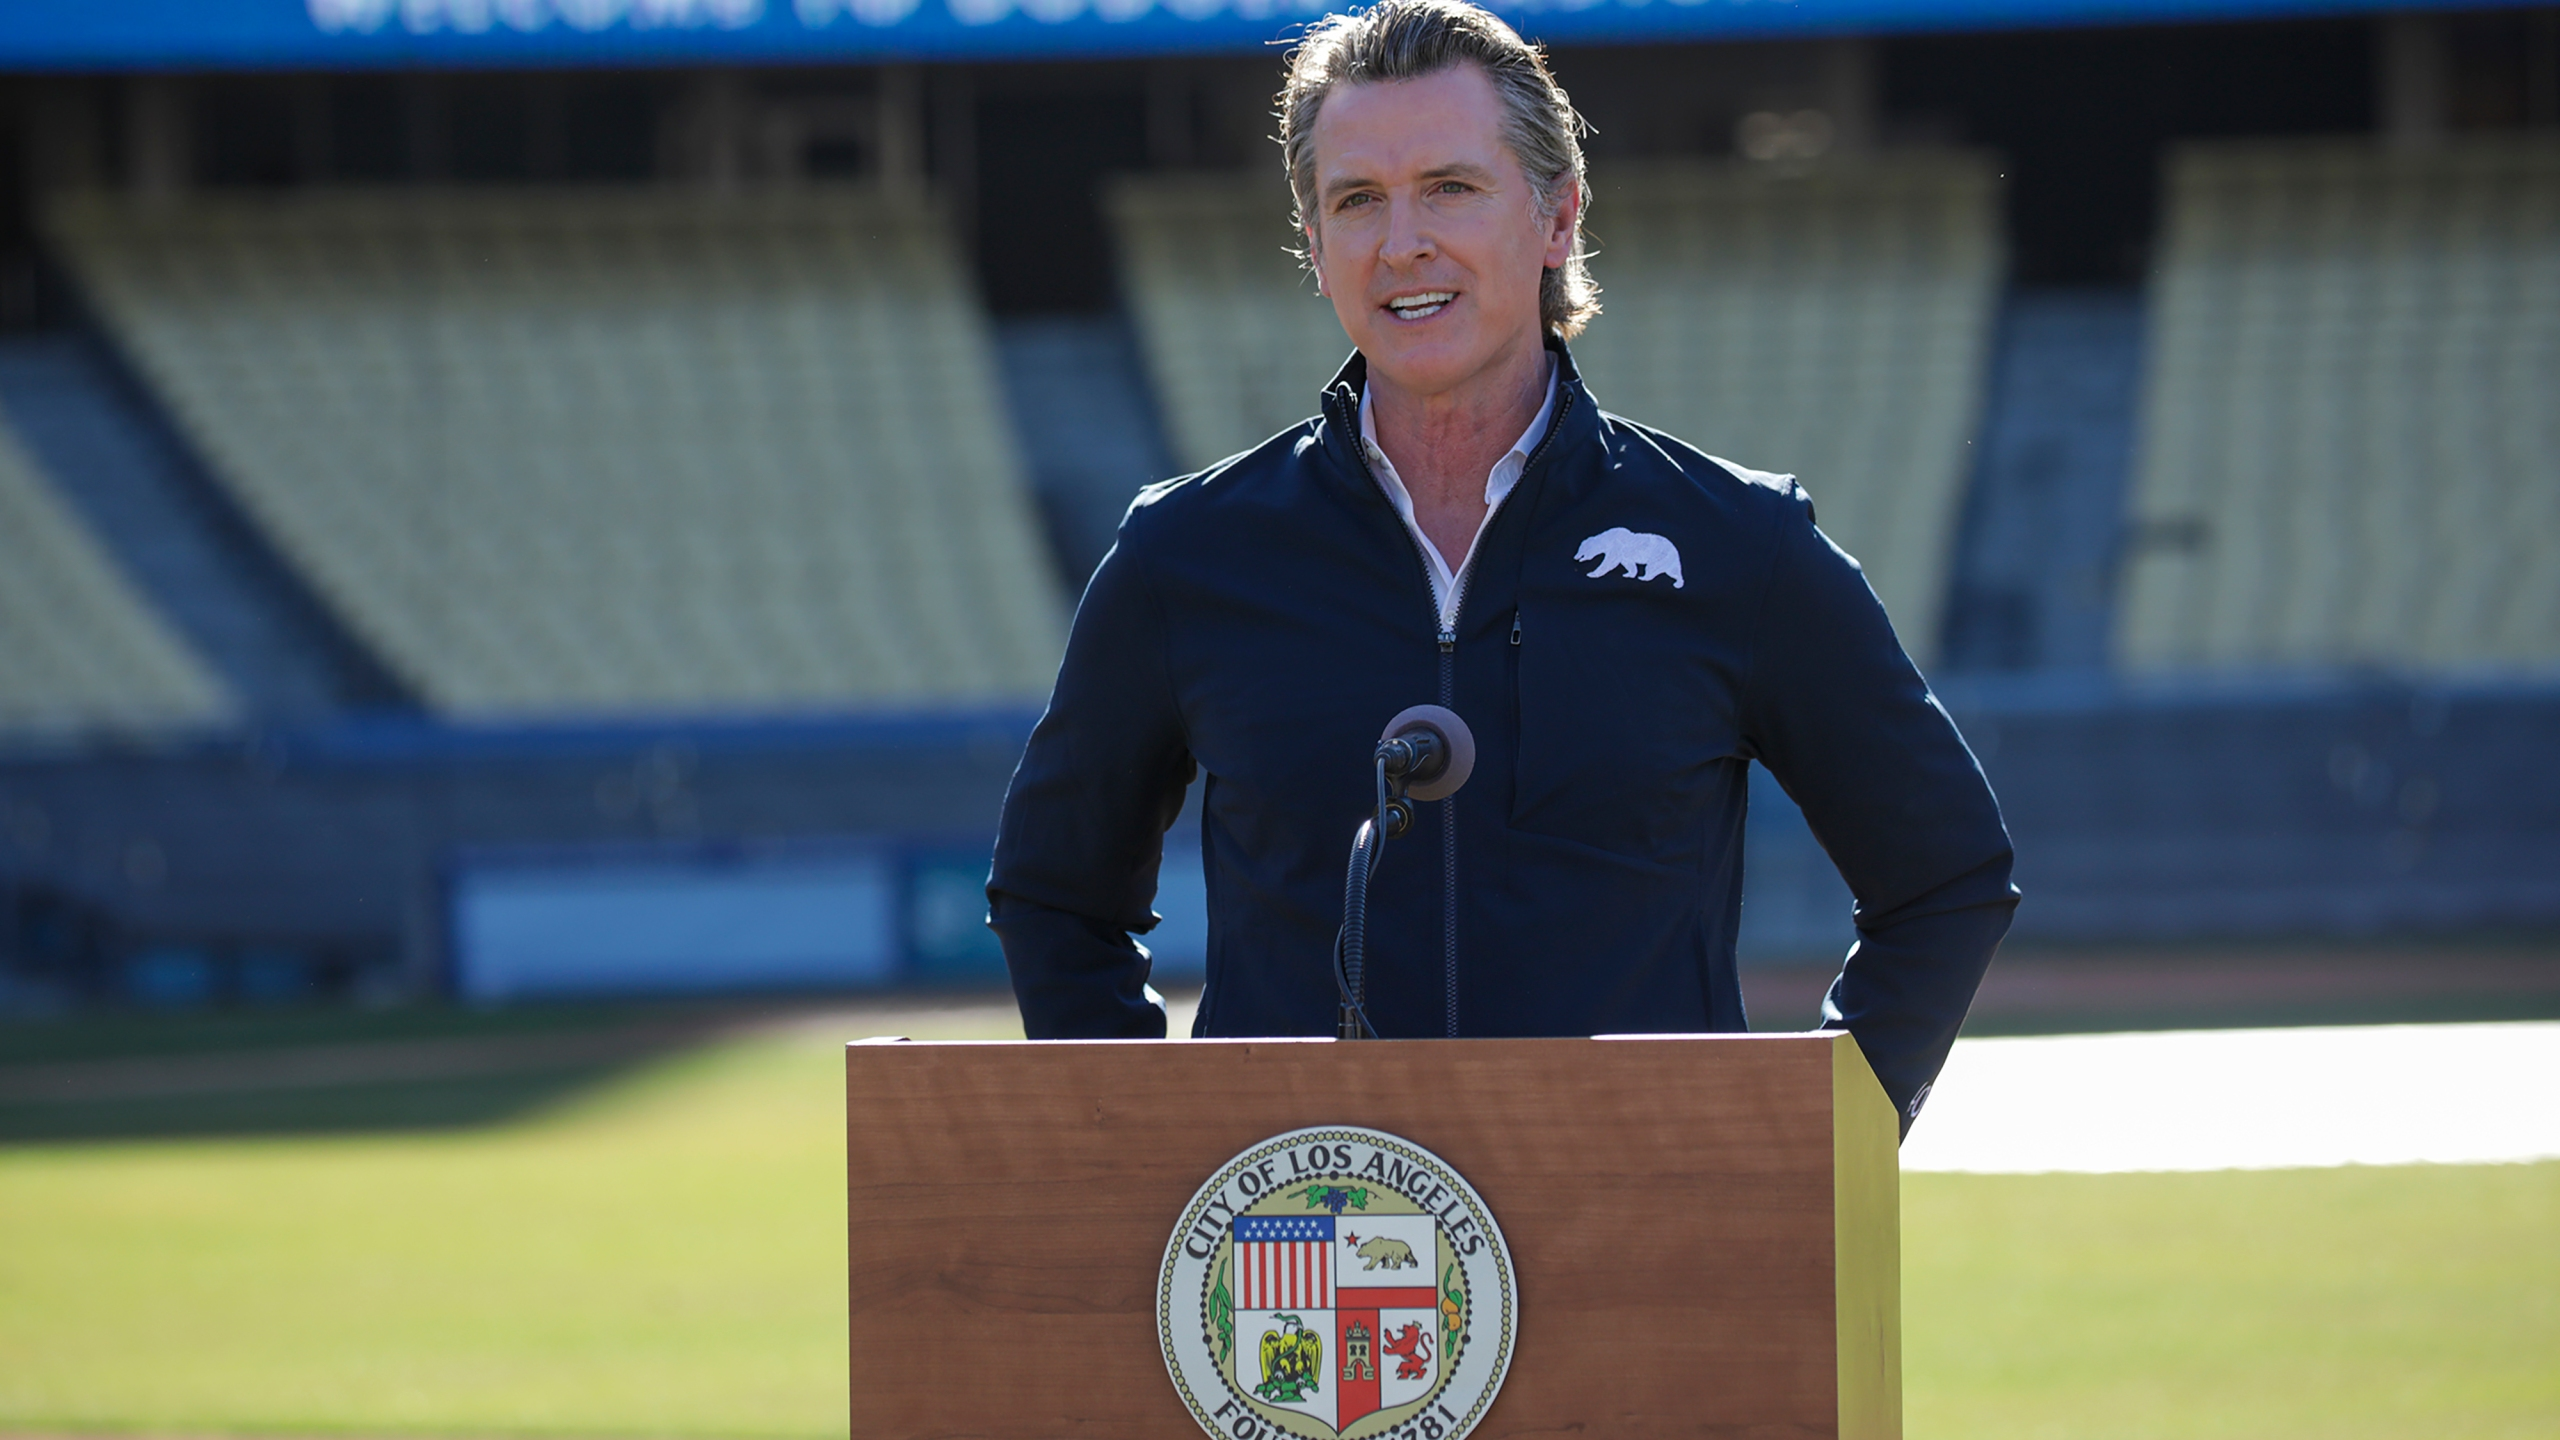 California Gov. Gavin Newsom addresses a press conference held at the launch of mass COVID-19 vaccination site at Dodger Stadium on Jan. 15, 2021 in Los Angeles. (Irfan Khan / POOL / AFP via Getty Images)